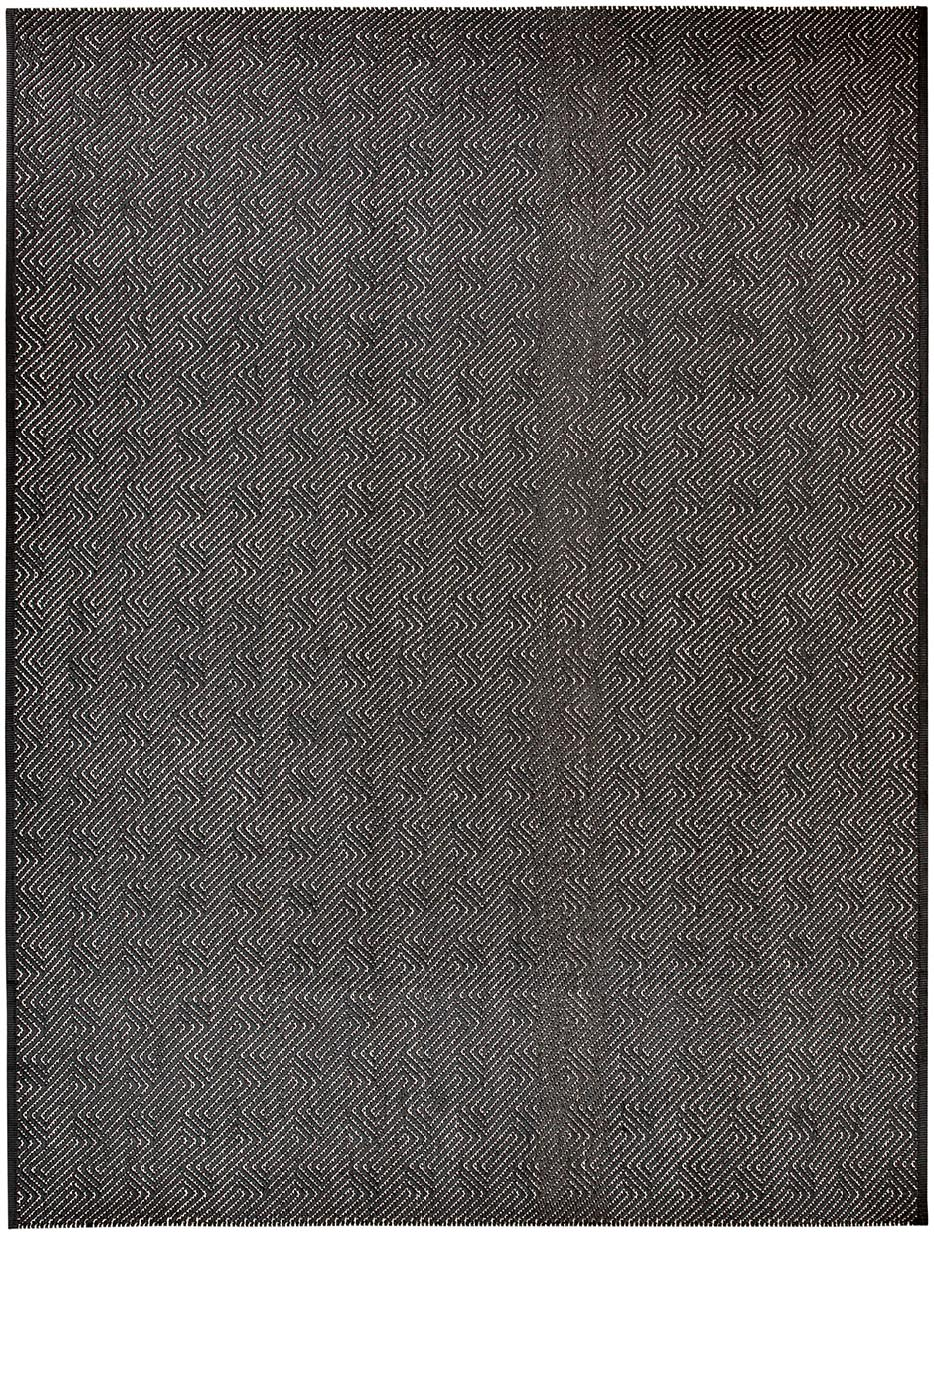 Tapis / Camille by Pinton